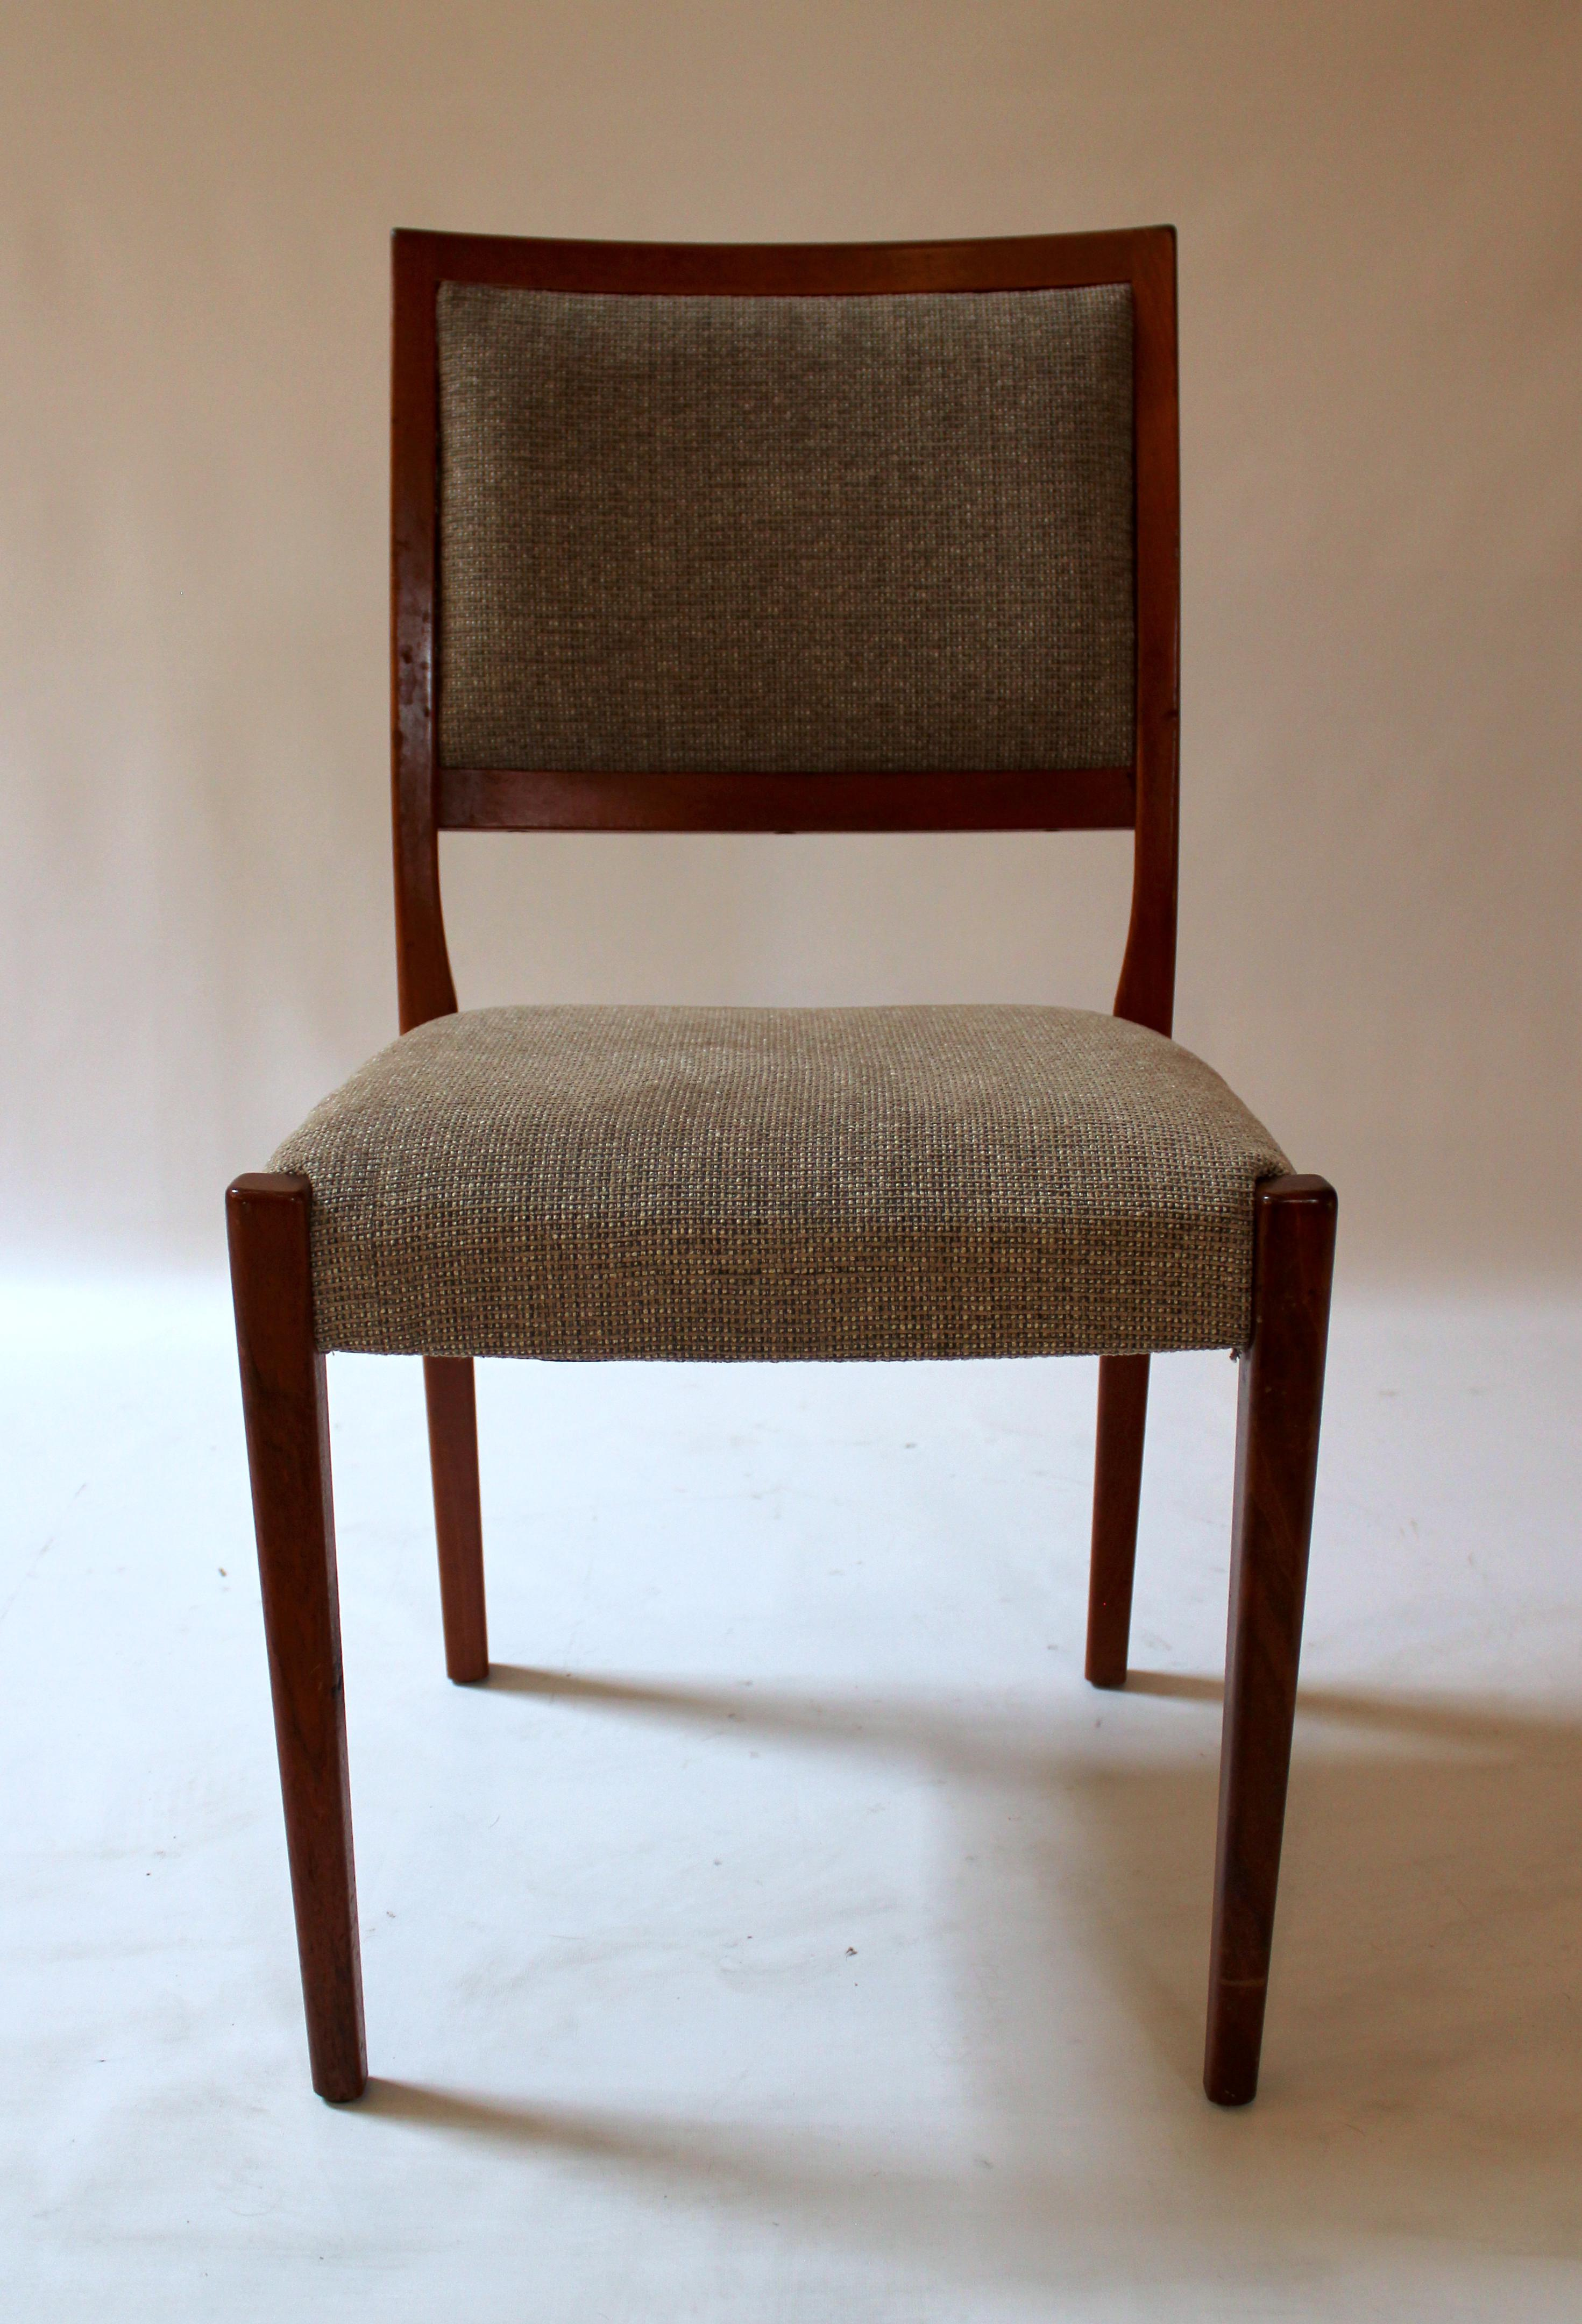 Vintage Scandinavian Dining Chair By Svegards Markaryd   Image 5 Of 10